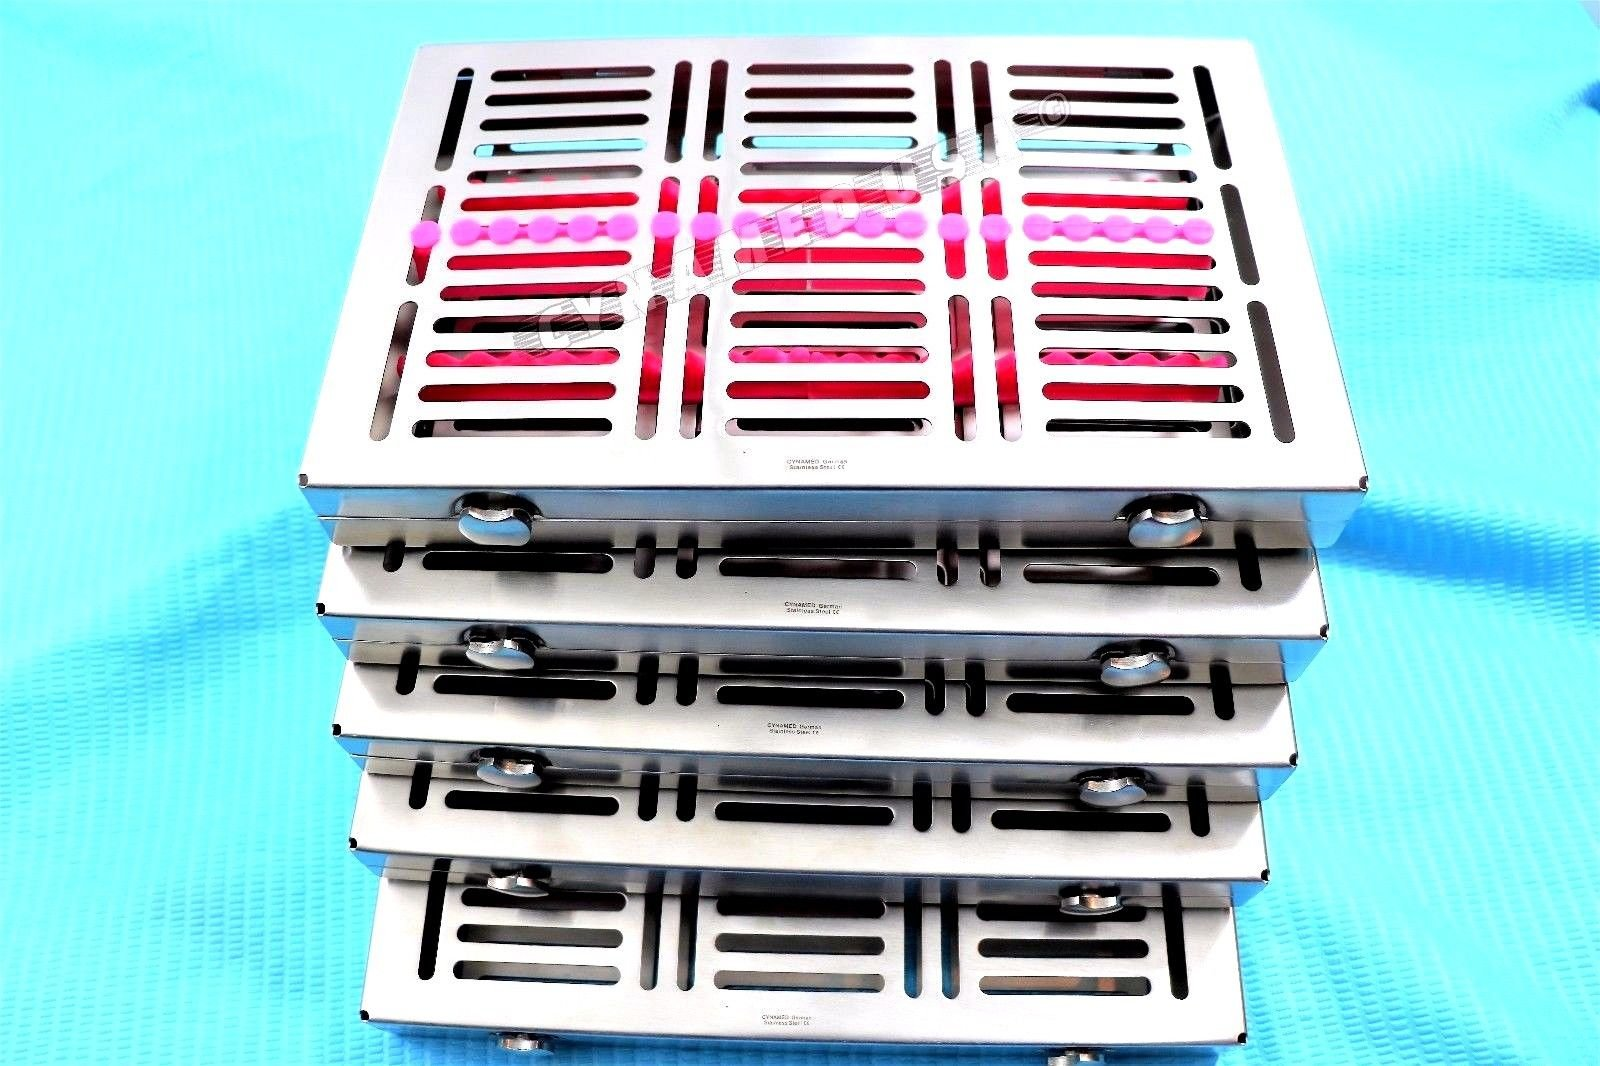 NEW HEAVY DUTY PREMIUM GERMAN 5 DENTAL SURGICAL AUTOCLAVE STERILIZATION CASSETTES FOR 20 INSTRUMENTS ( PACK OF 5 EACH )